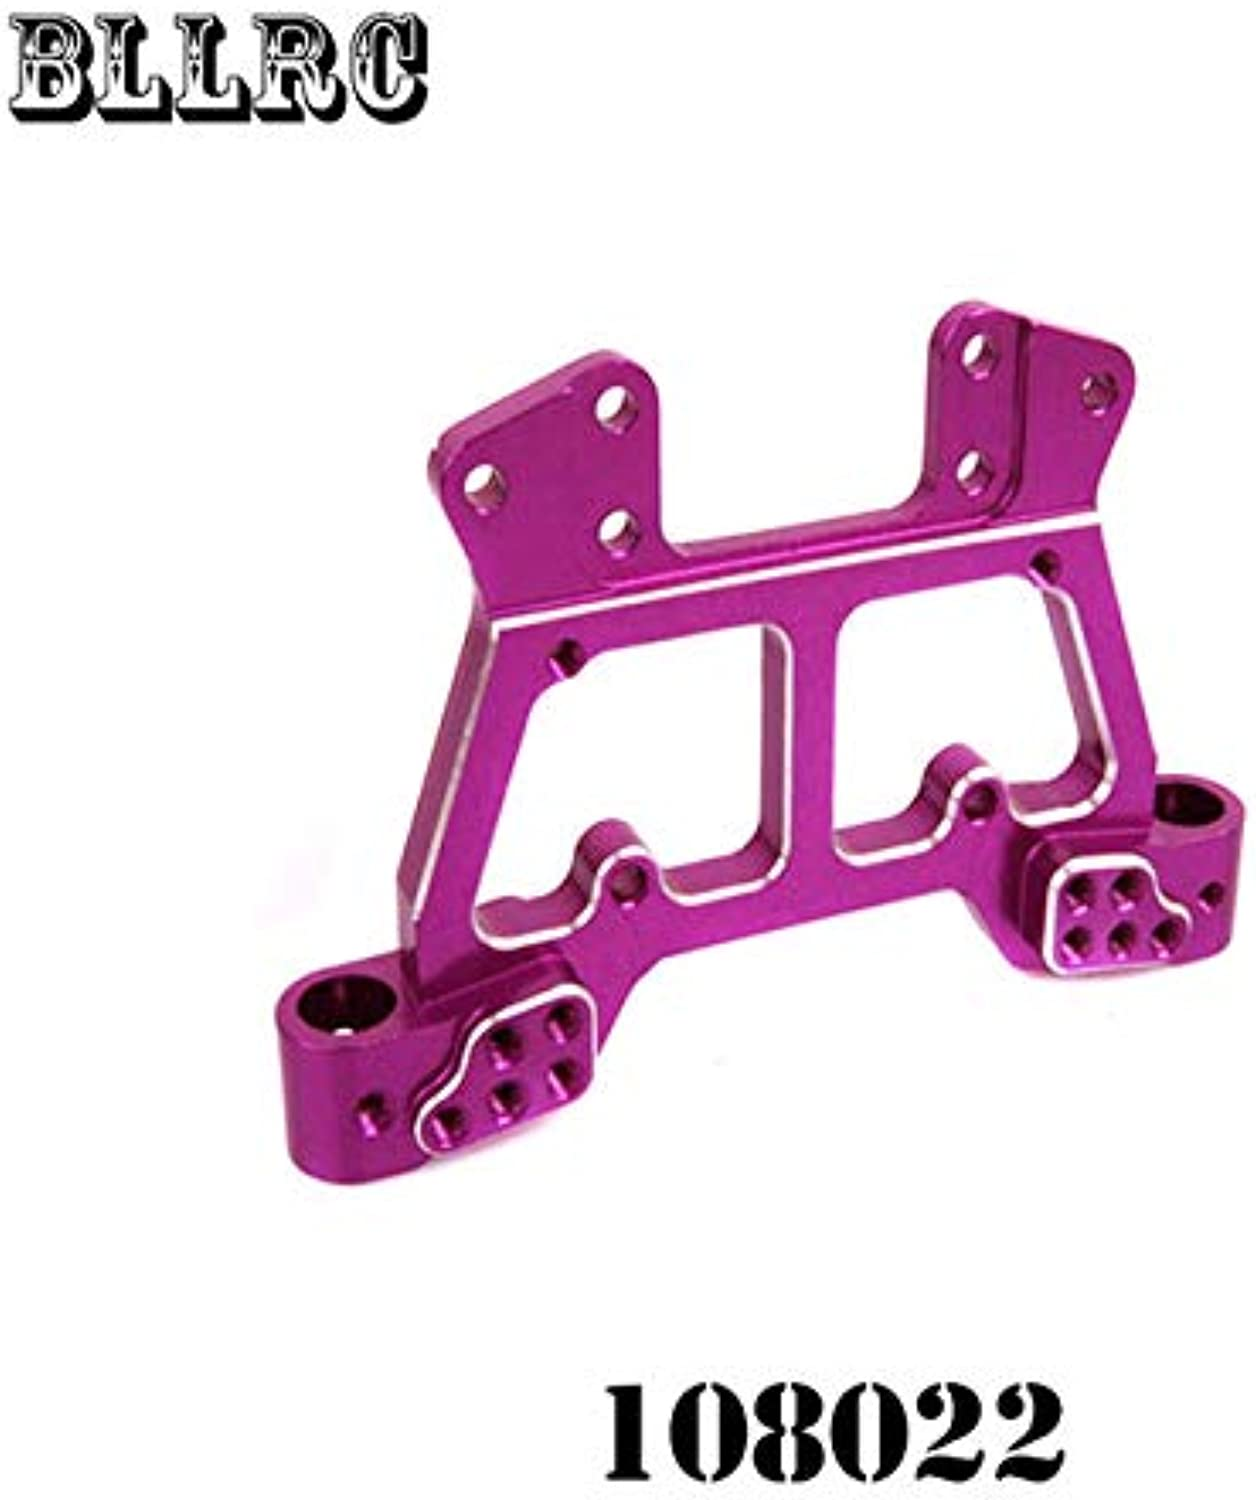 Free Shipping RC HSP 108022 188022 Aluminum Aolly Metal Front & Rear Shock Tower 08012 1 10 Upgrade Parts for 94108 94188 94111   108022 A